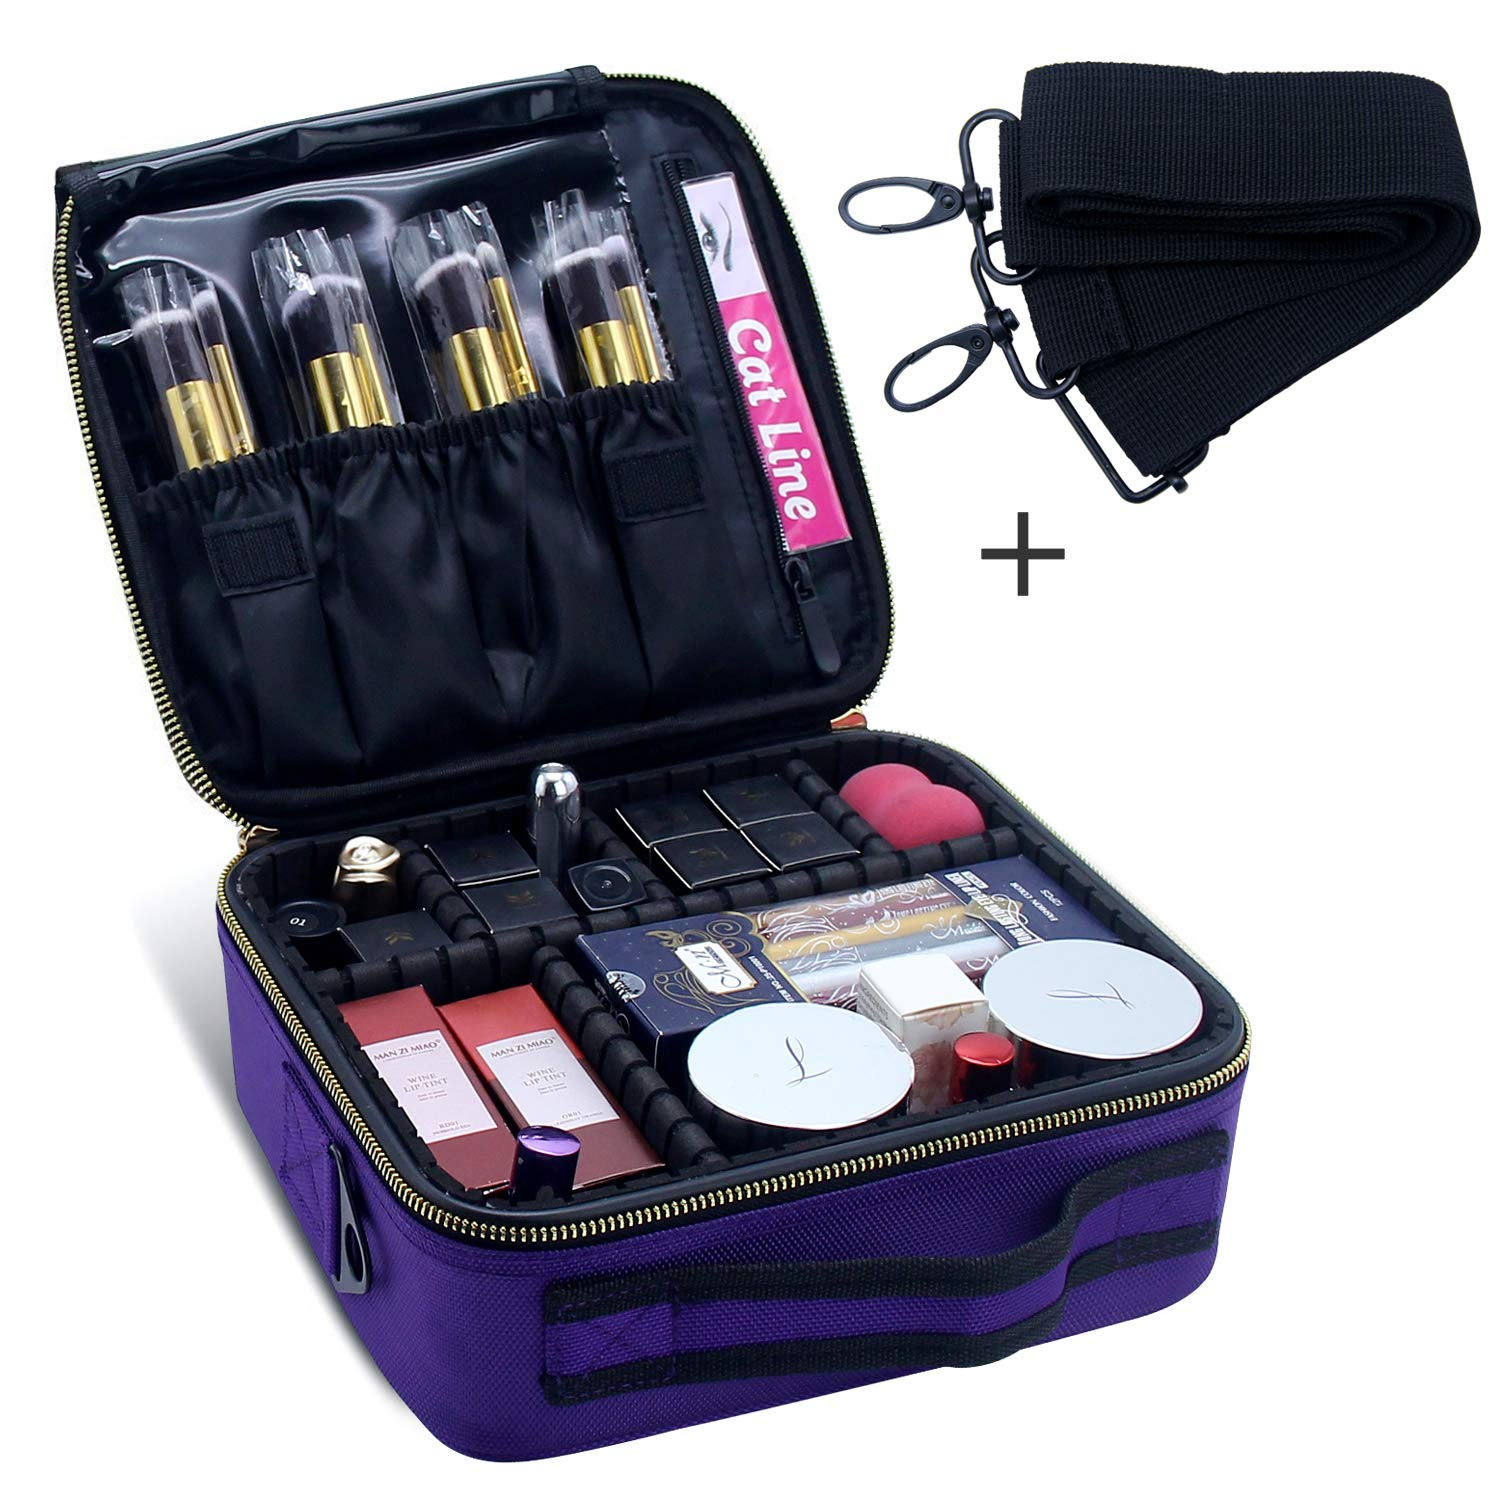 Purple Makeup Bag, Chomeiu Professional Makeup Case With Shoulder Strap Portable Travel Cosmetic Bag Organizer Makeup Boxes With Compartments FUS